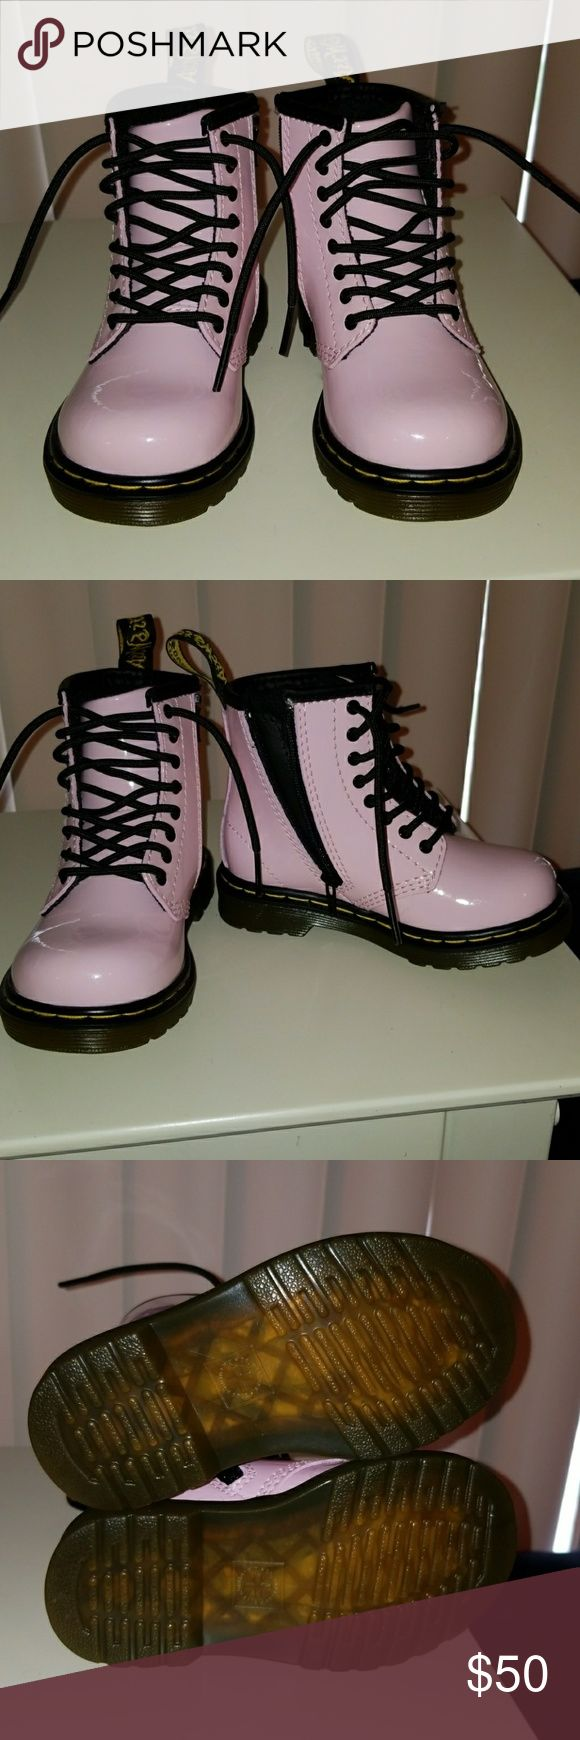 DR. MARTENS BABY PINKPATENT LAMPER BOOTS Brand new Dr. Martens baby pink patent lamper boots size 7. Purchased on the Dr. Martens website. They have only been tried on by my daughter. They were the wrong size. The boots are sold out online- Dr. Martens website. Comes with original box. Fast shipping. Dr. Martens Shoes Boots